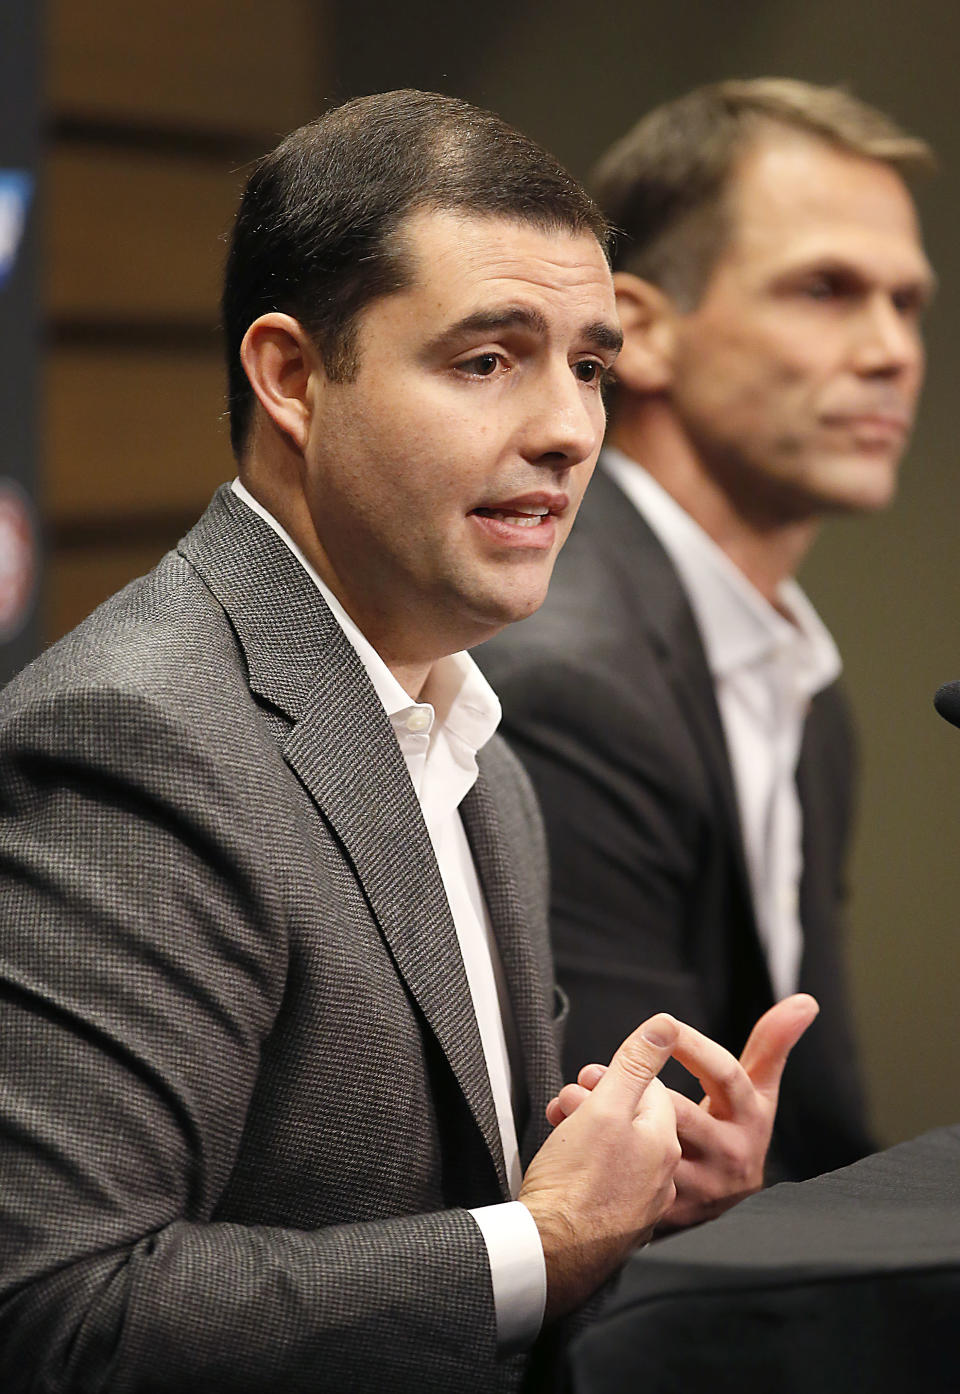 San Francisco 49ers owner Jed York, left, and general manager Trent Baalke, right, speaks during a news conference at 49ers football headquarters in Santa Clara, Calif., on Monday, Dec. 29, 2014. (AP Photo/Tony Avelar)